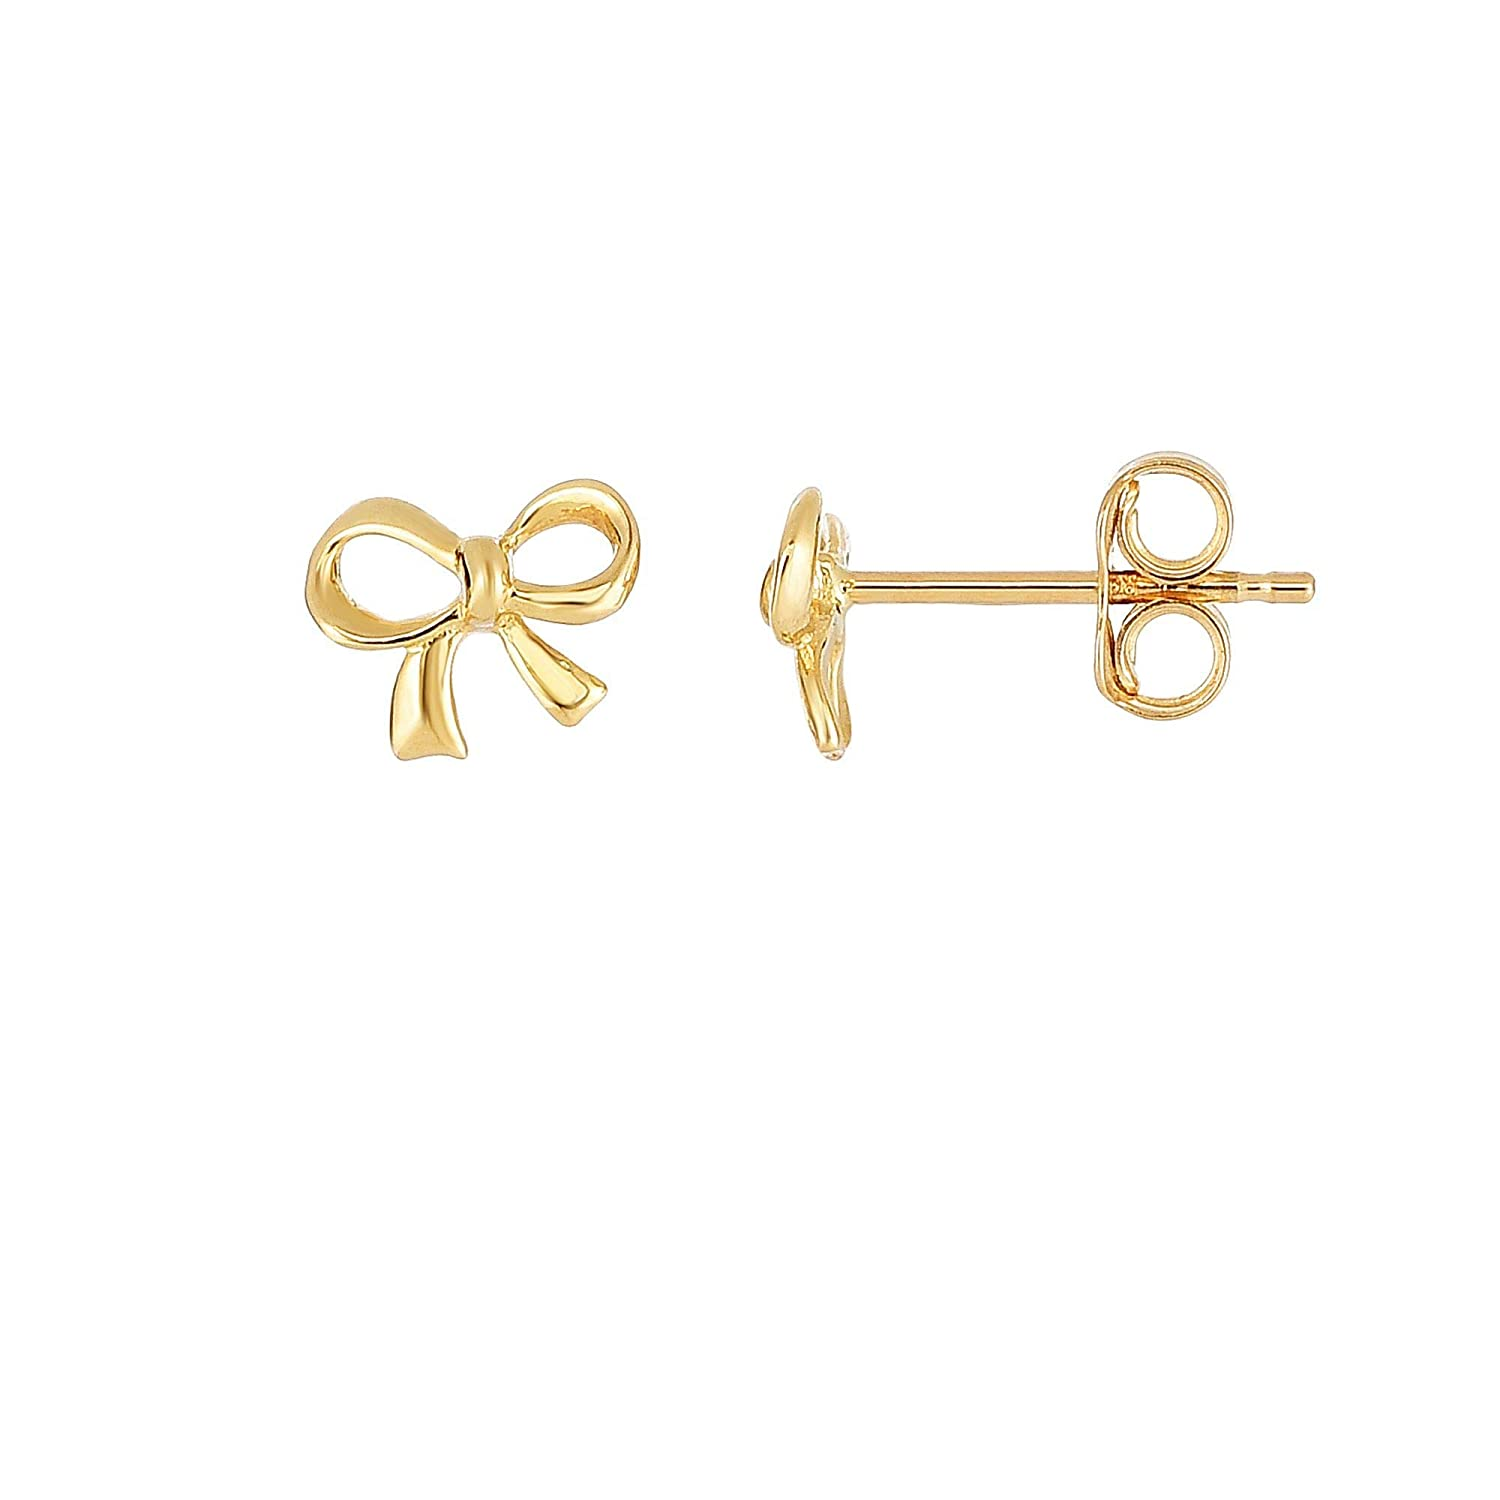 14K Yellow Gold Shiny 2x6.5x8mm Fancy Post Bow Shape Earrings with Push Back by IcedTime